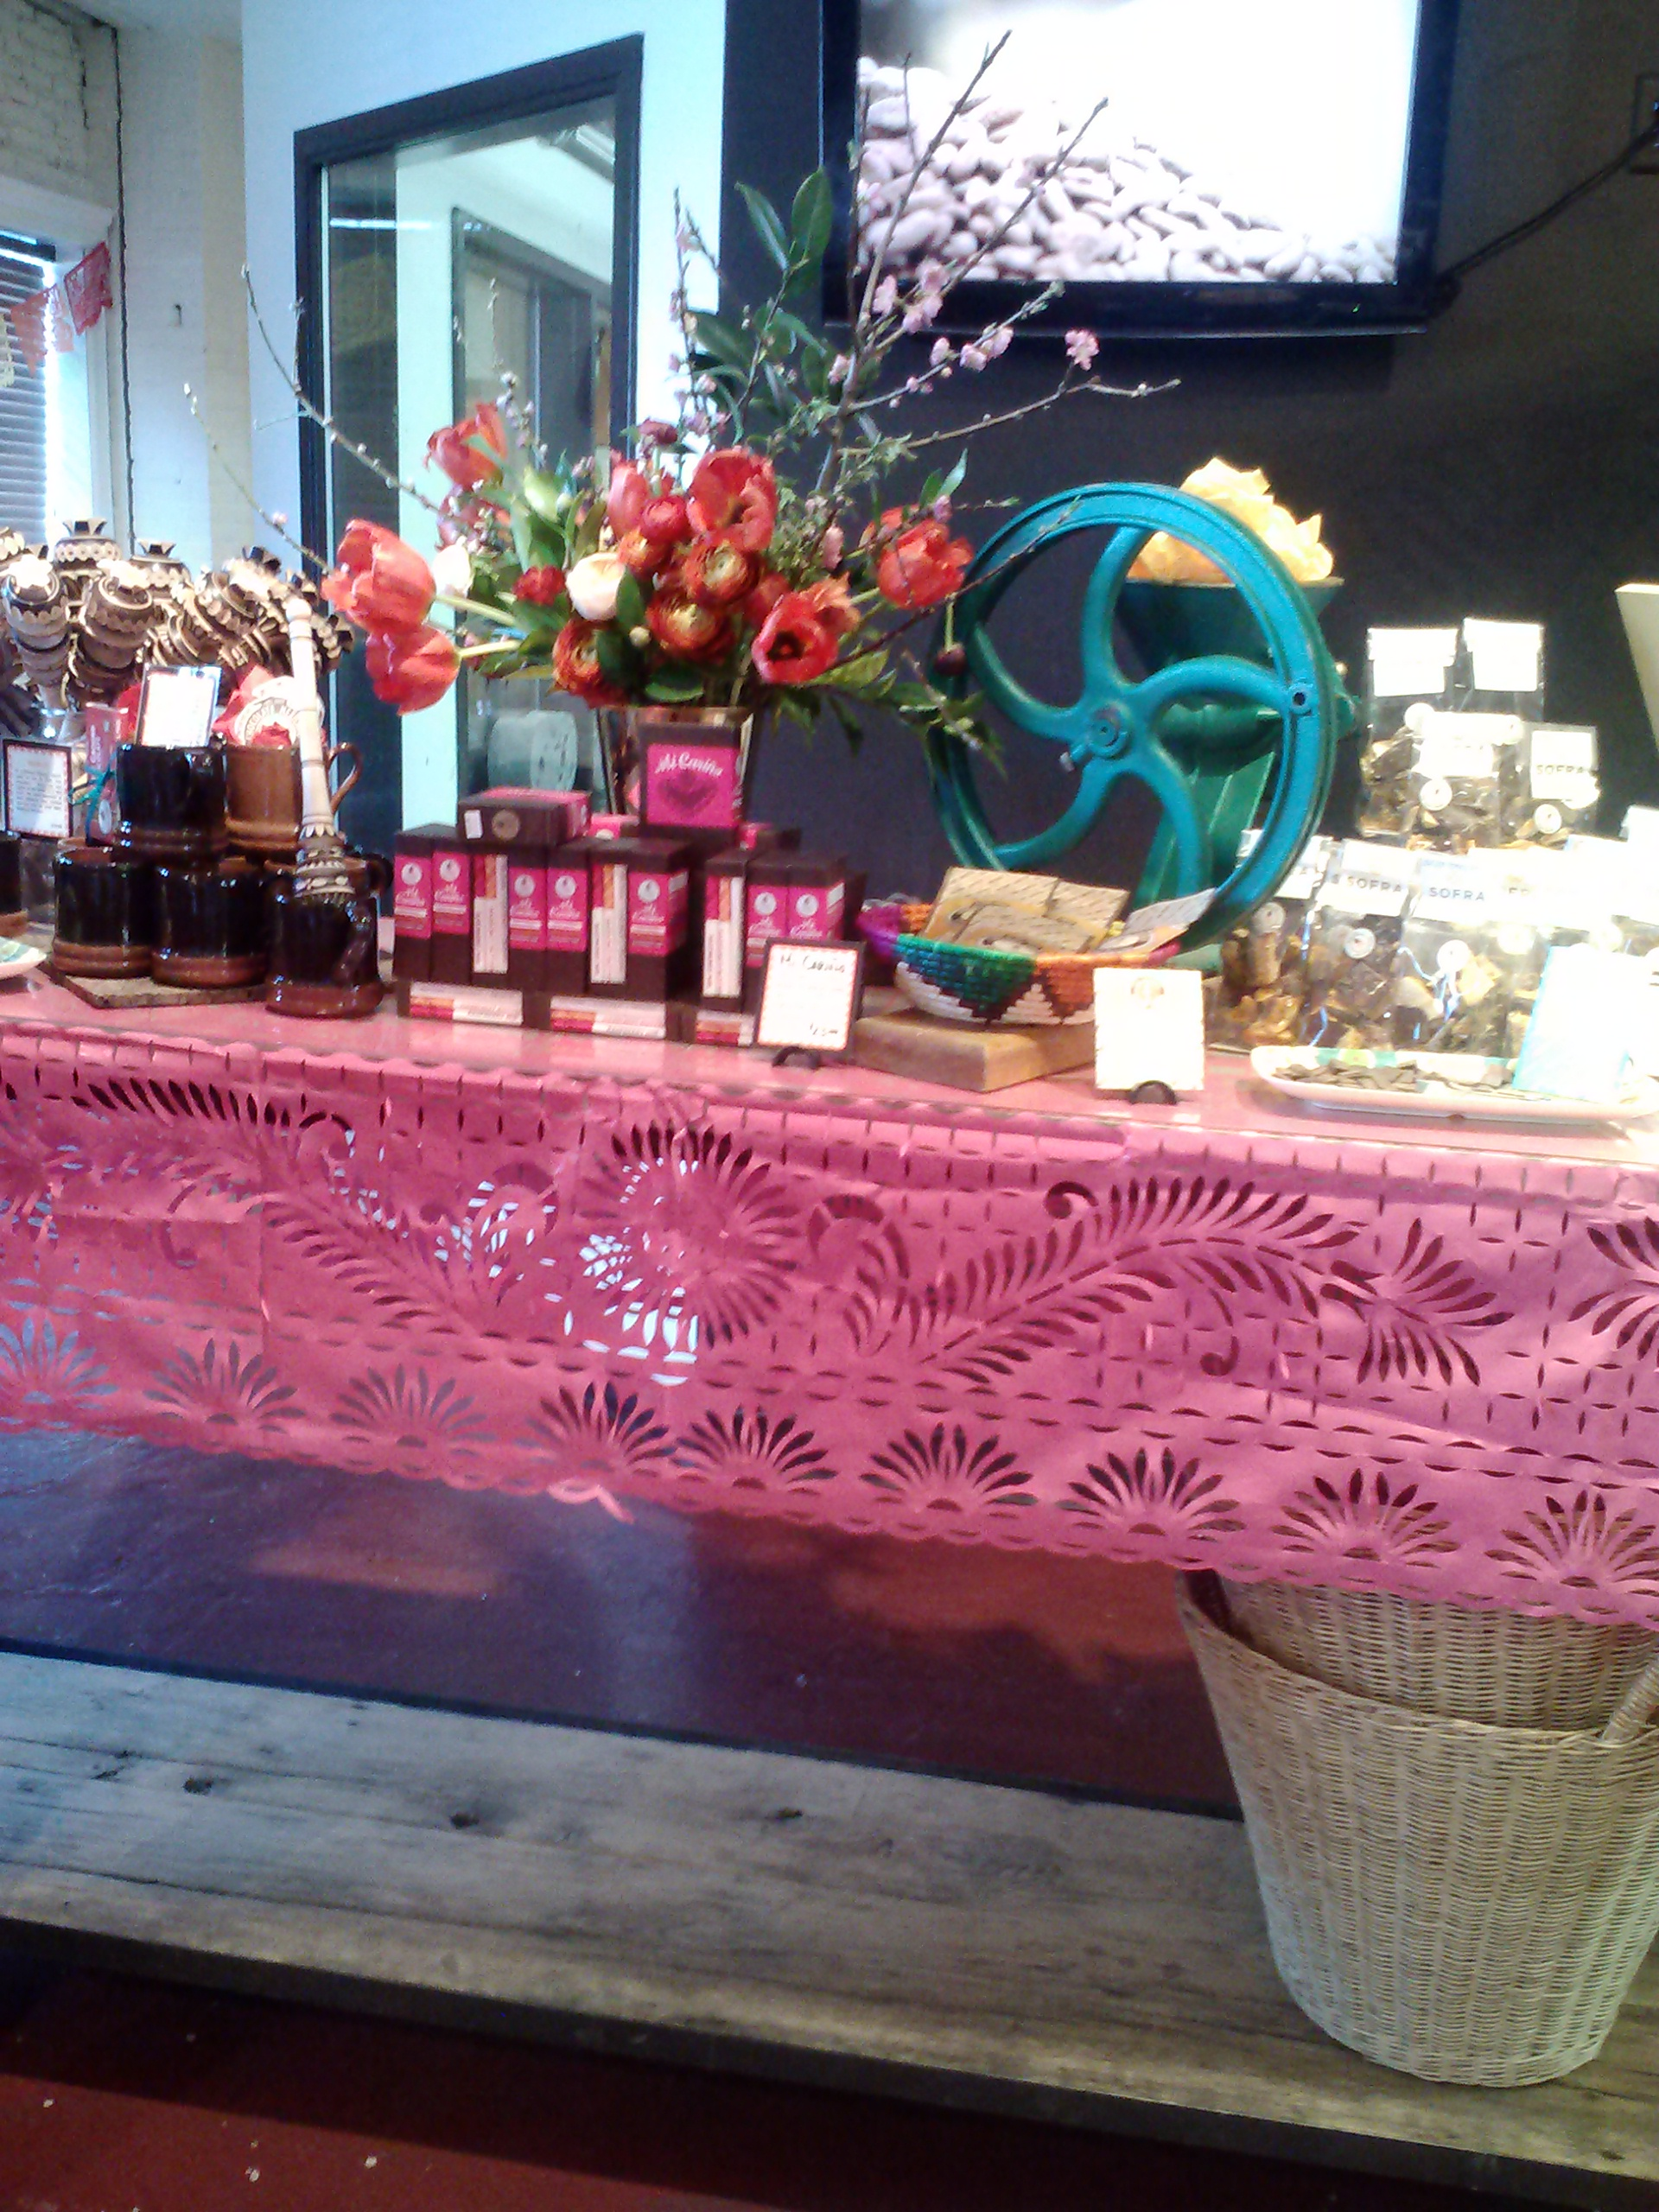 Valentine's Day Taza Chocolate Factory Tour - The Veggie Blog